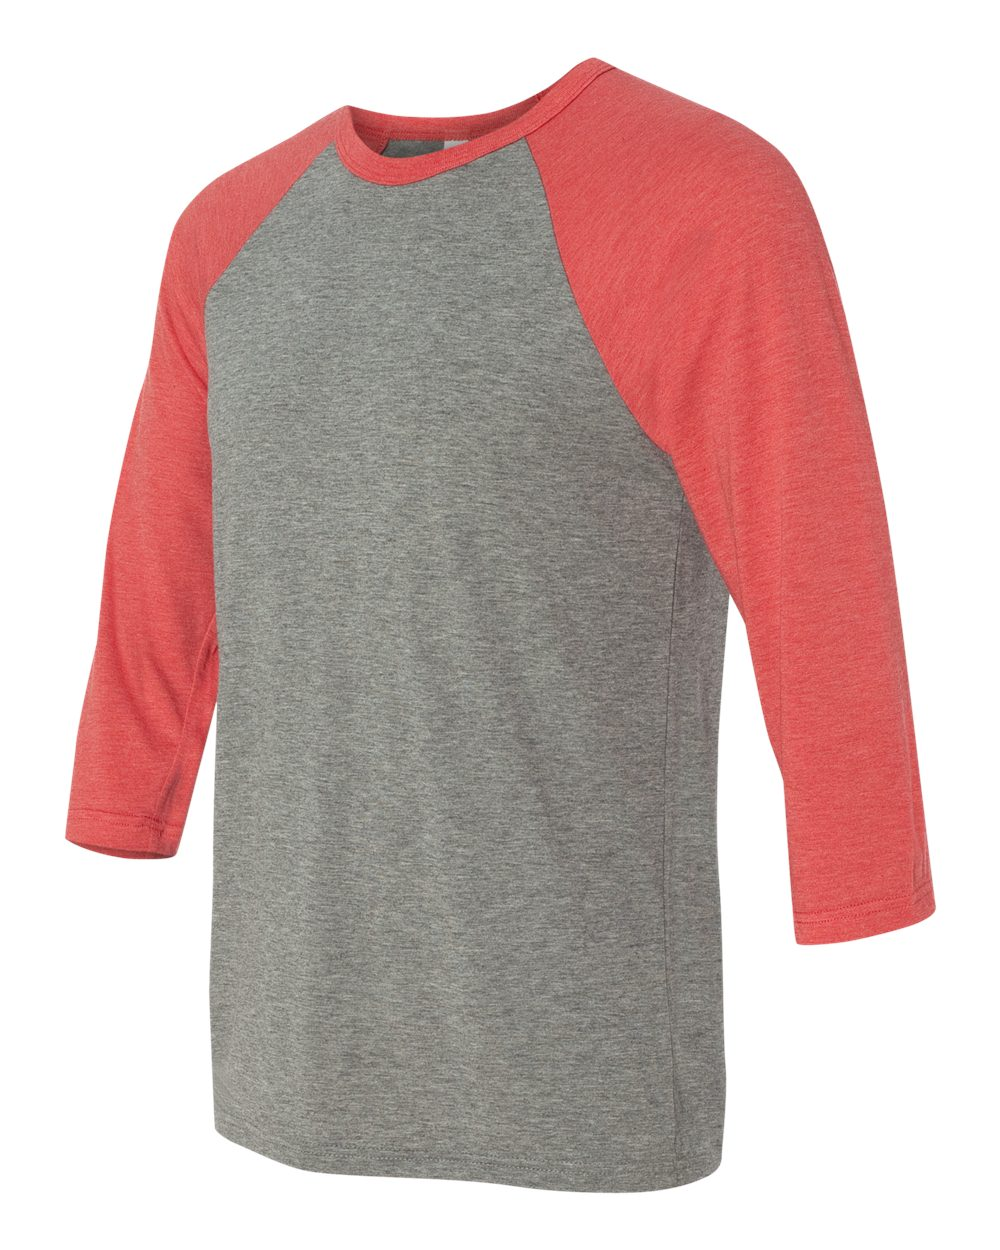 click to view Grey/Light Red Triblend